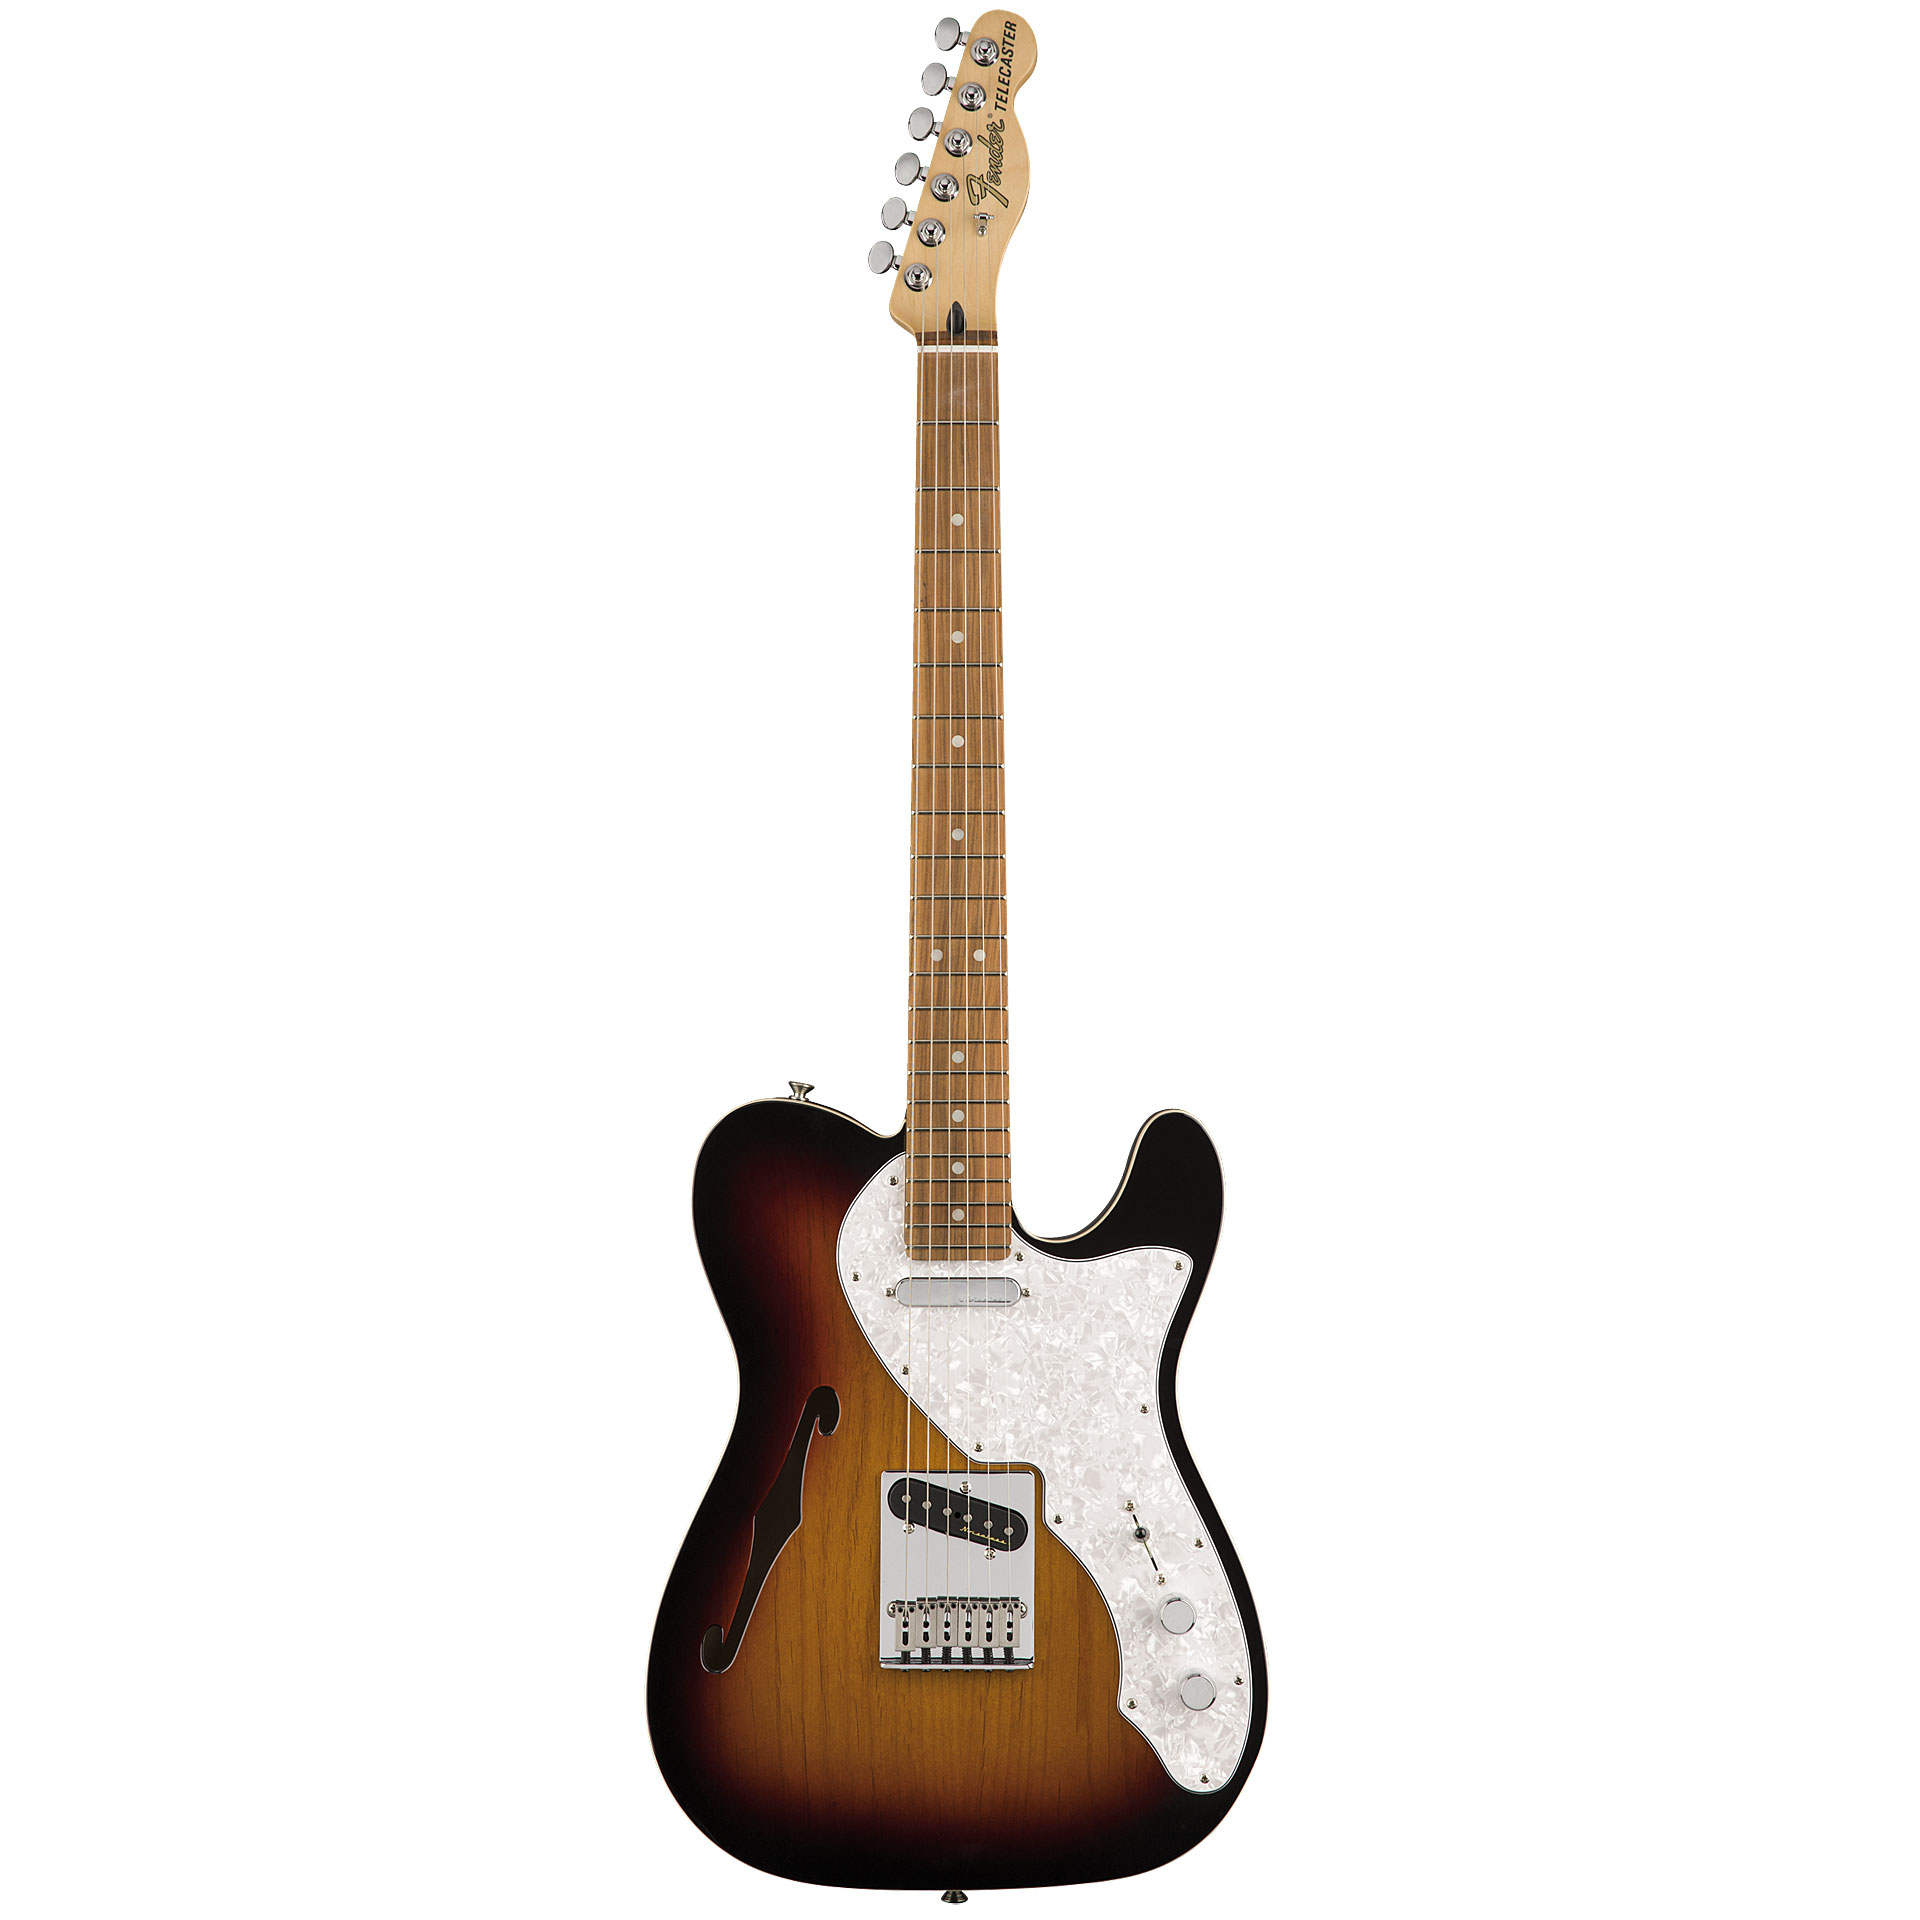 4638079d30818 Guitare électrique Fender Telecaster Thinline PF 3TSB ...